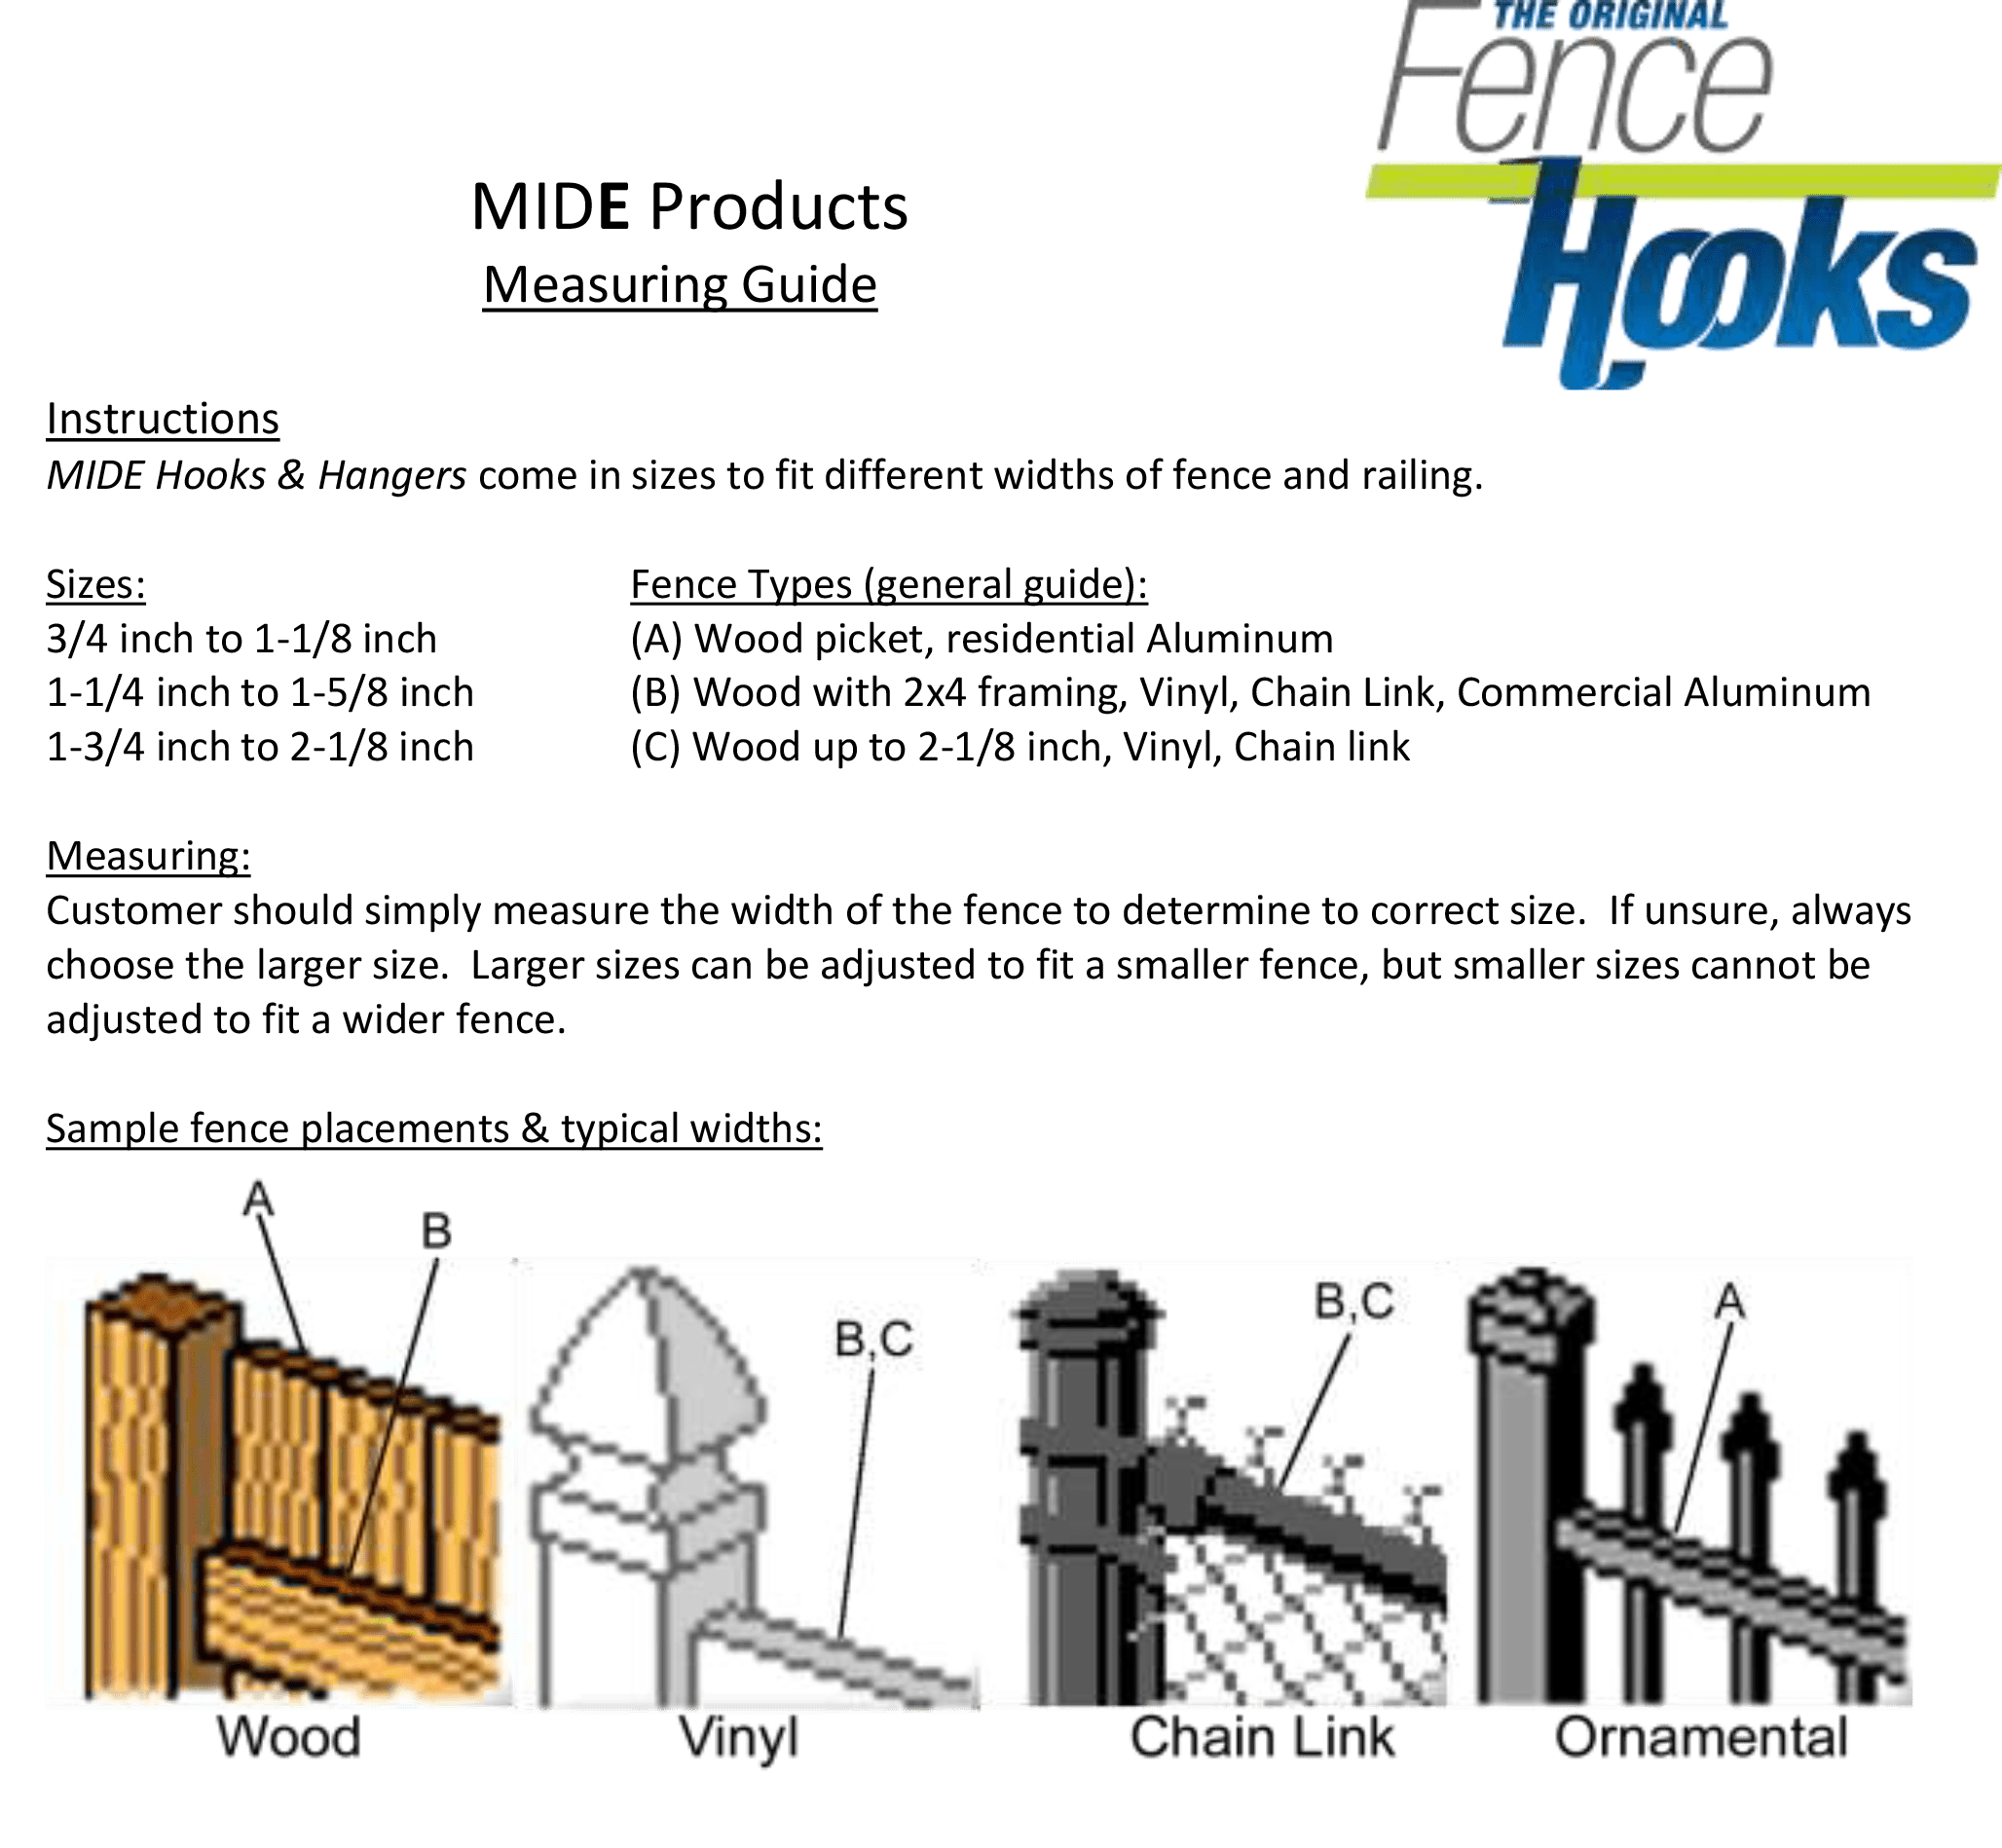 MIDE Hooks and Hangers mesuring guide